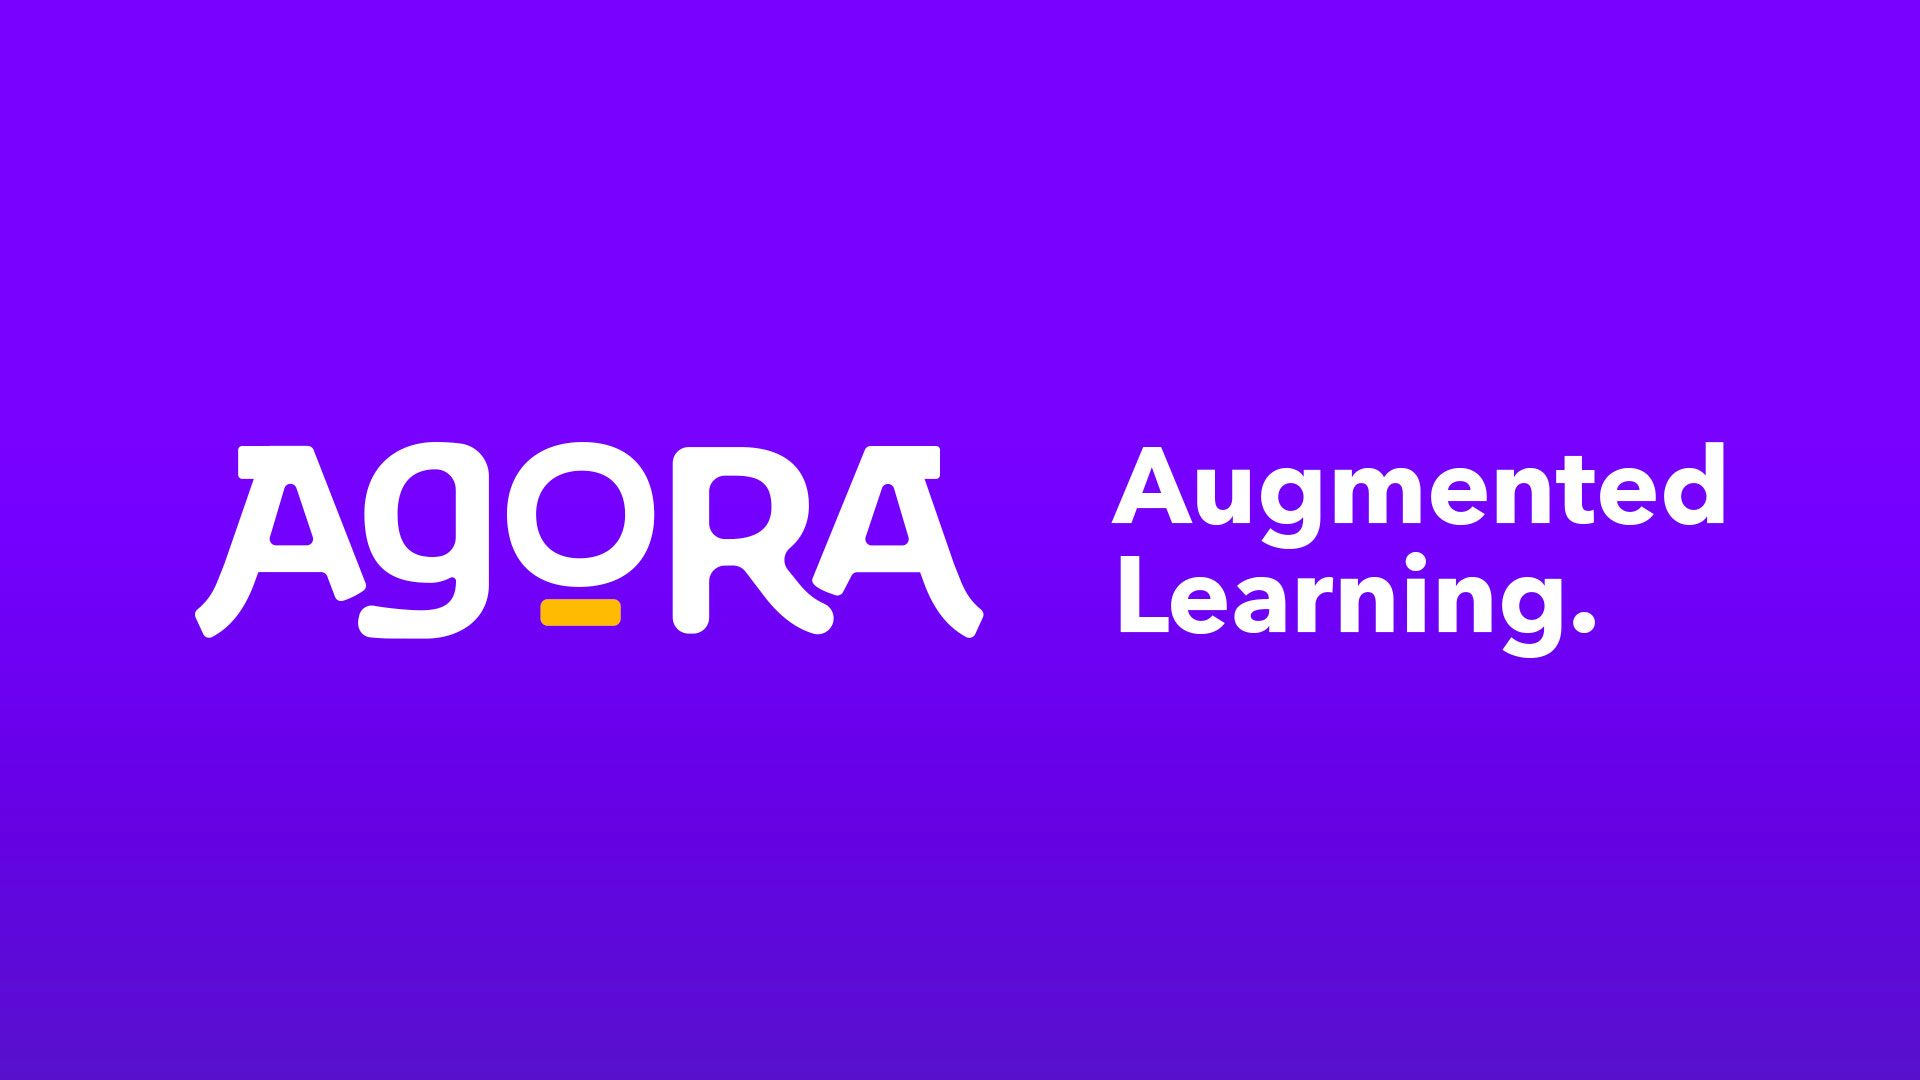 Learning with AR: Agora